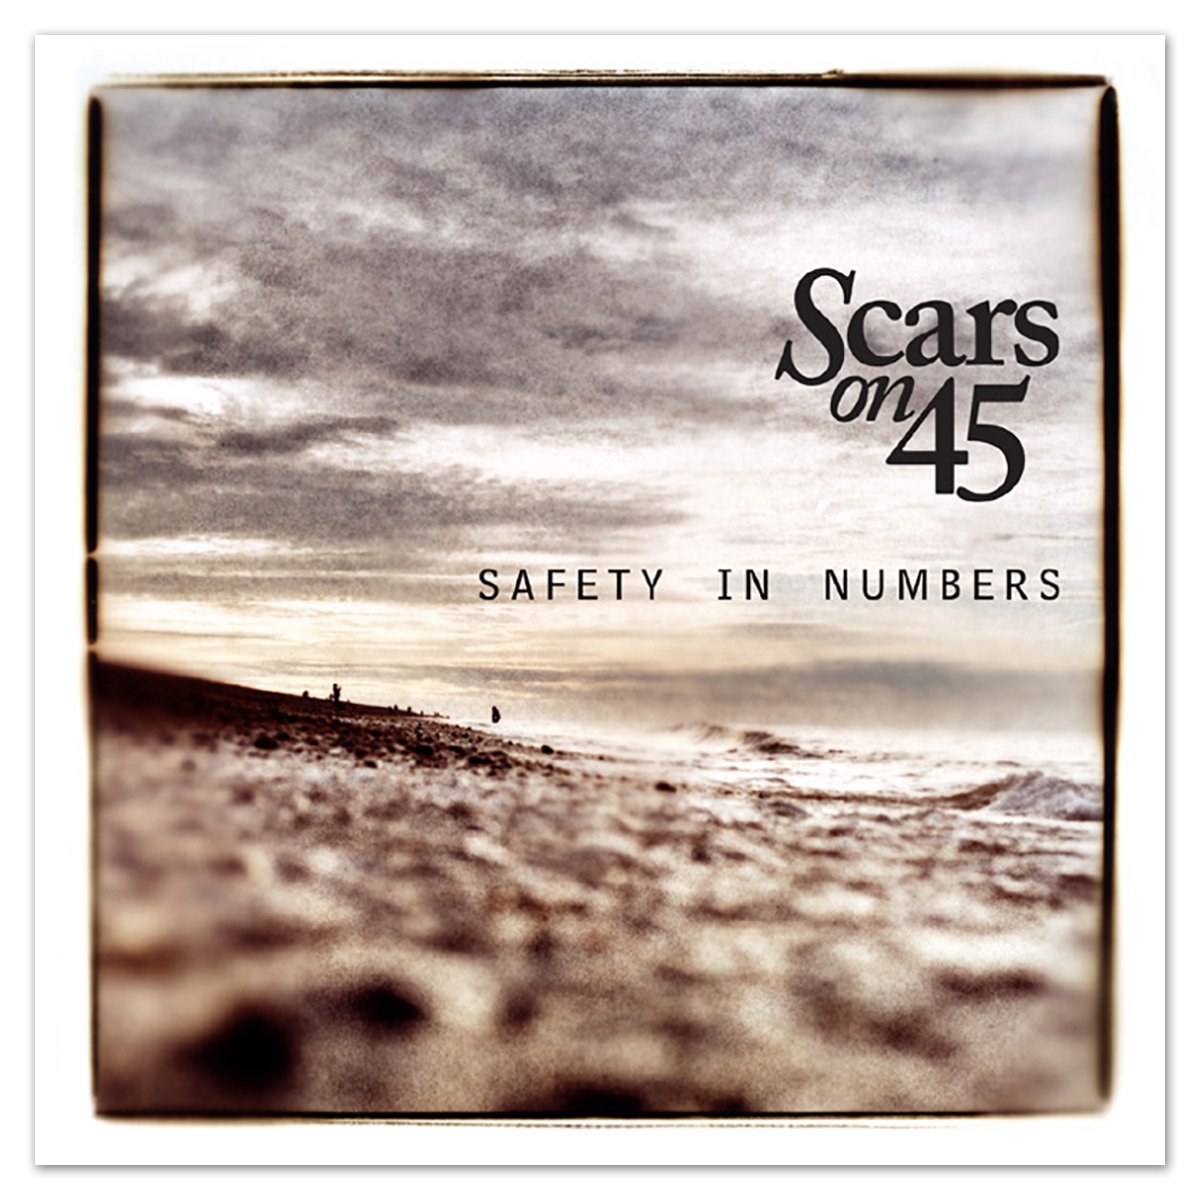 Scars on 45 - Safety in Numbers CD